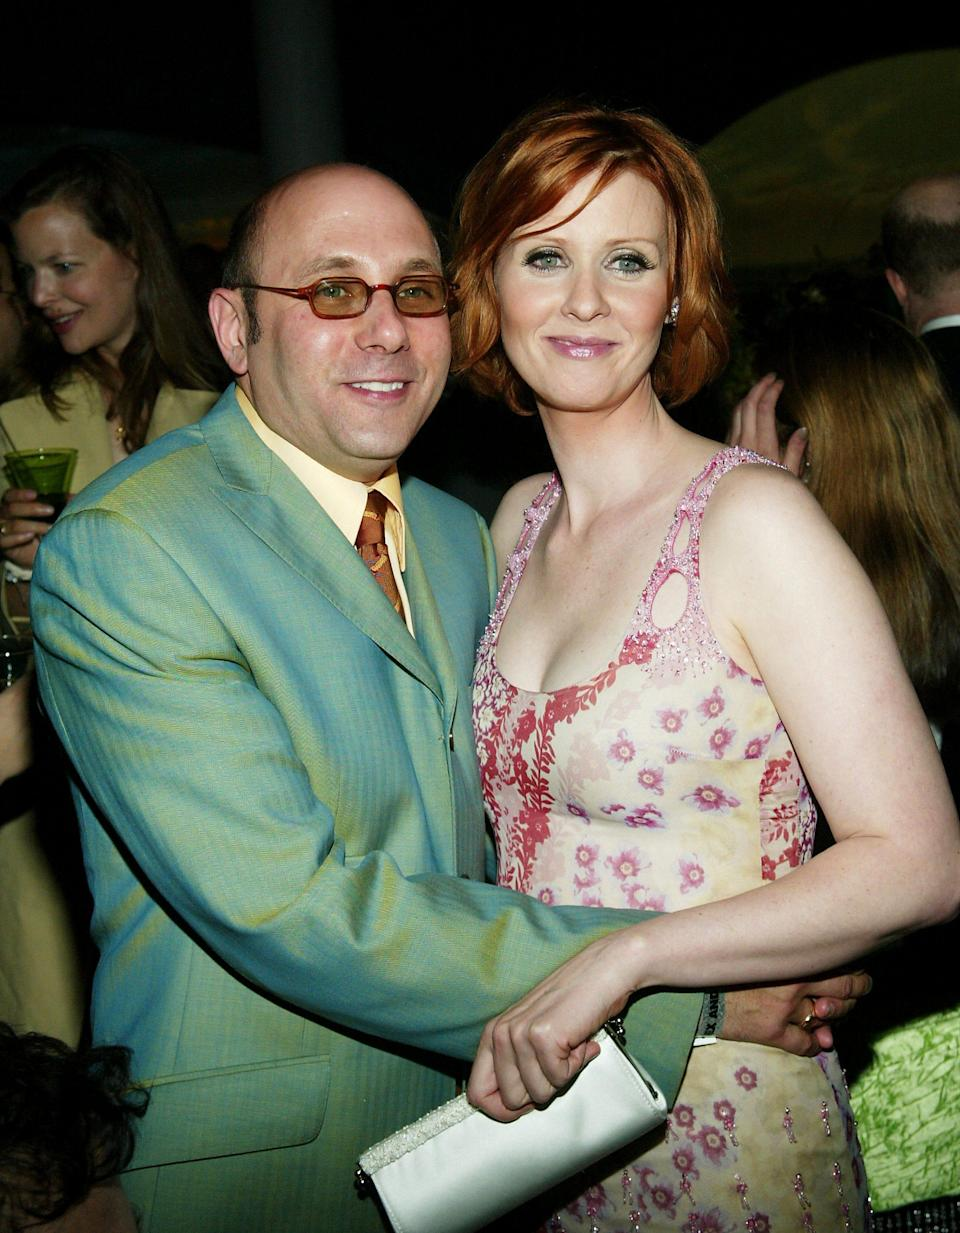 """Willie Garson and Cynthia Nixon attend HBO'S """"Sex and The City"""" season premiere screening after-party at the American Museum of Natural History in 2003."""